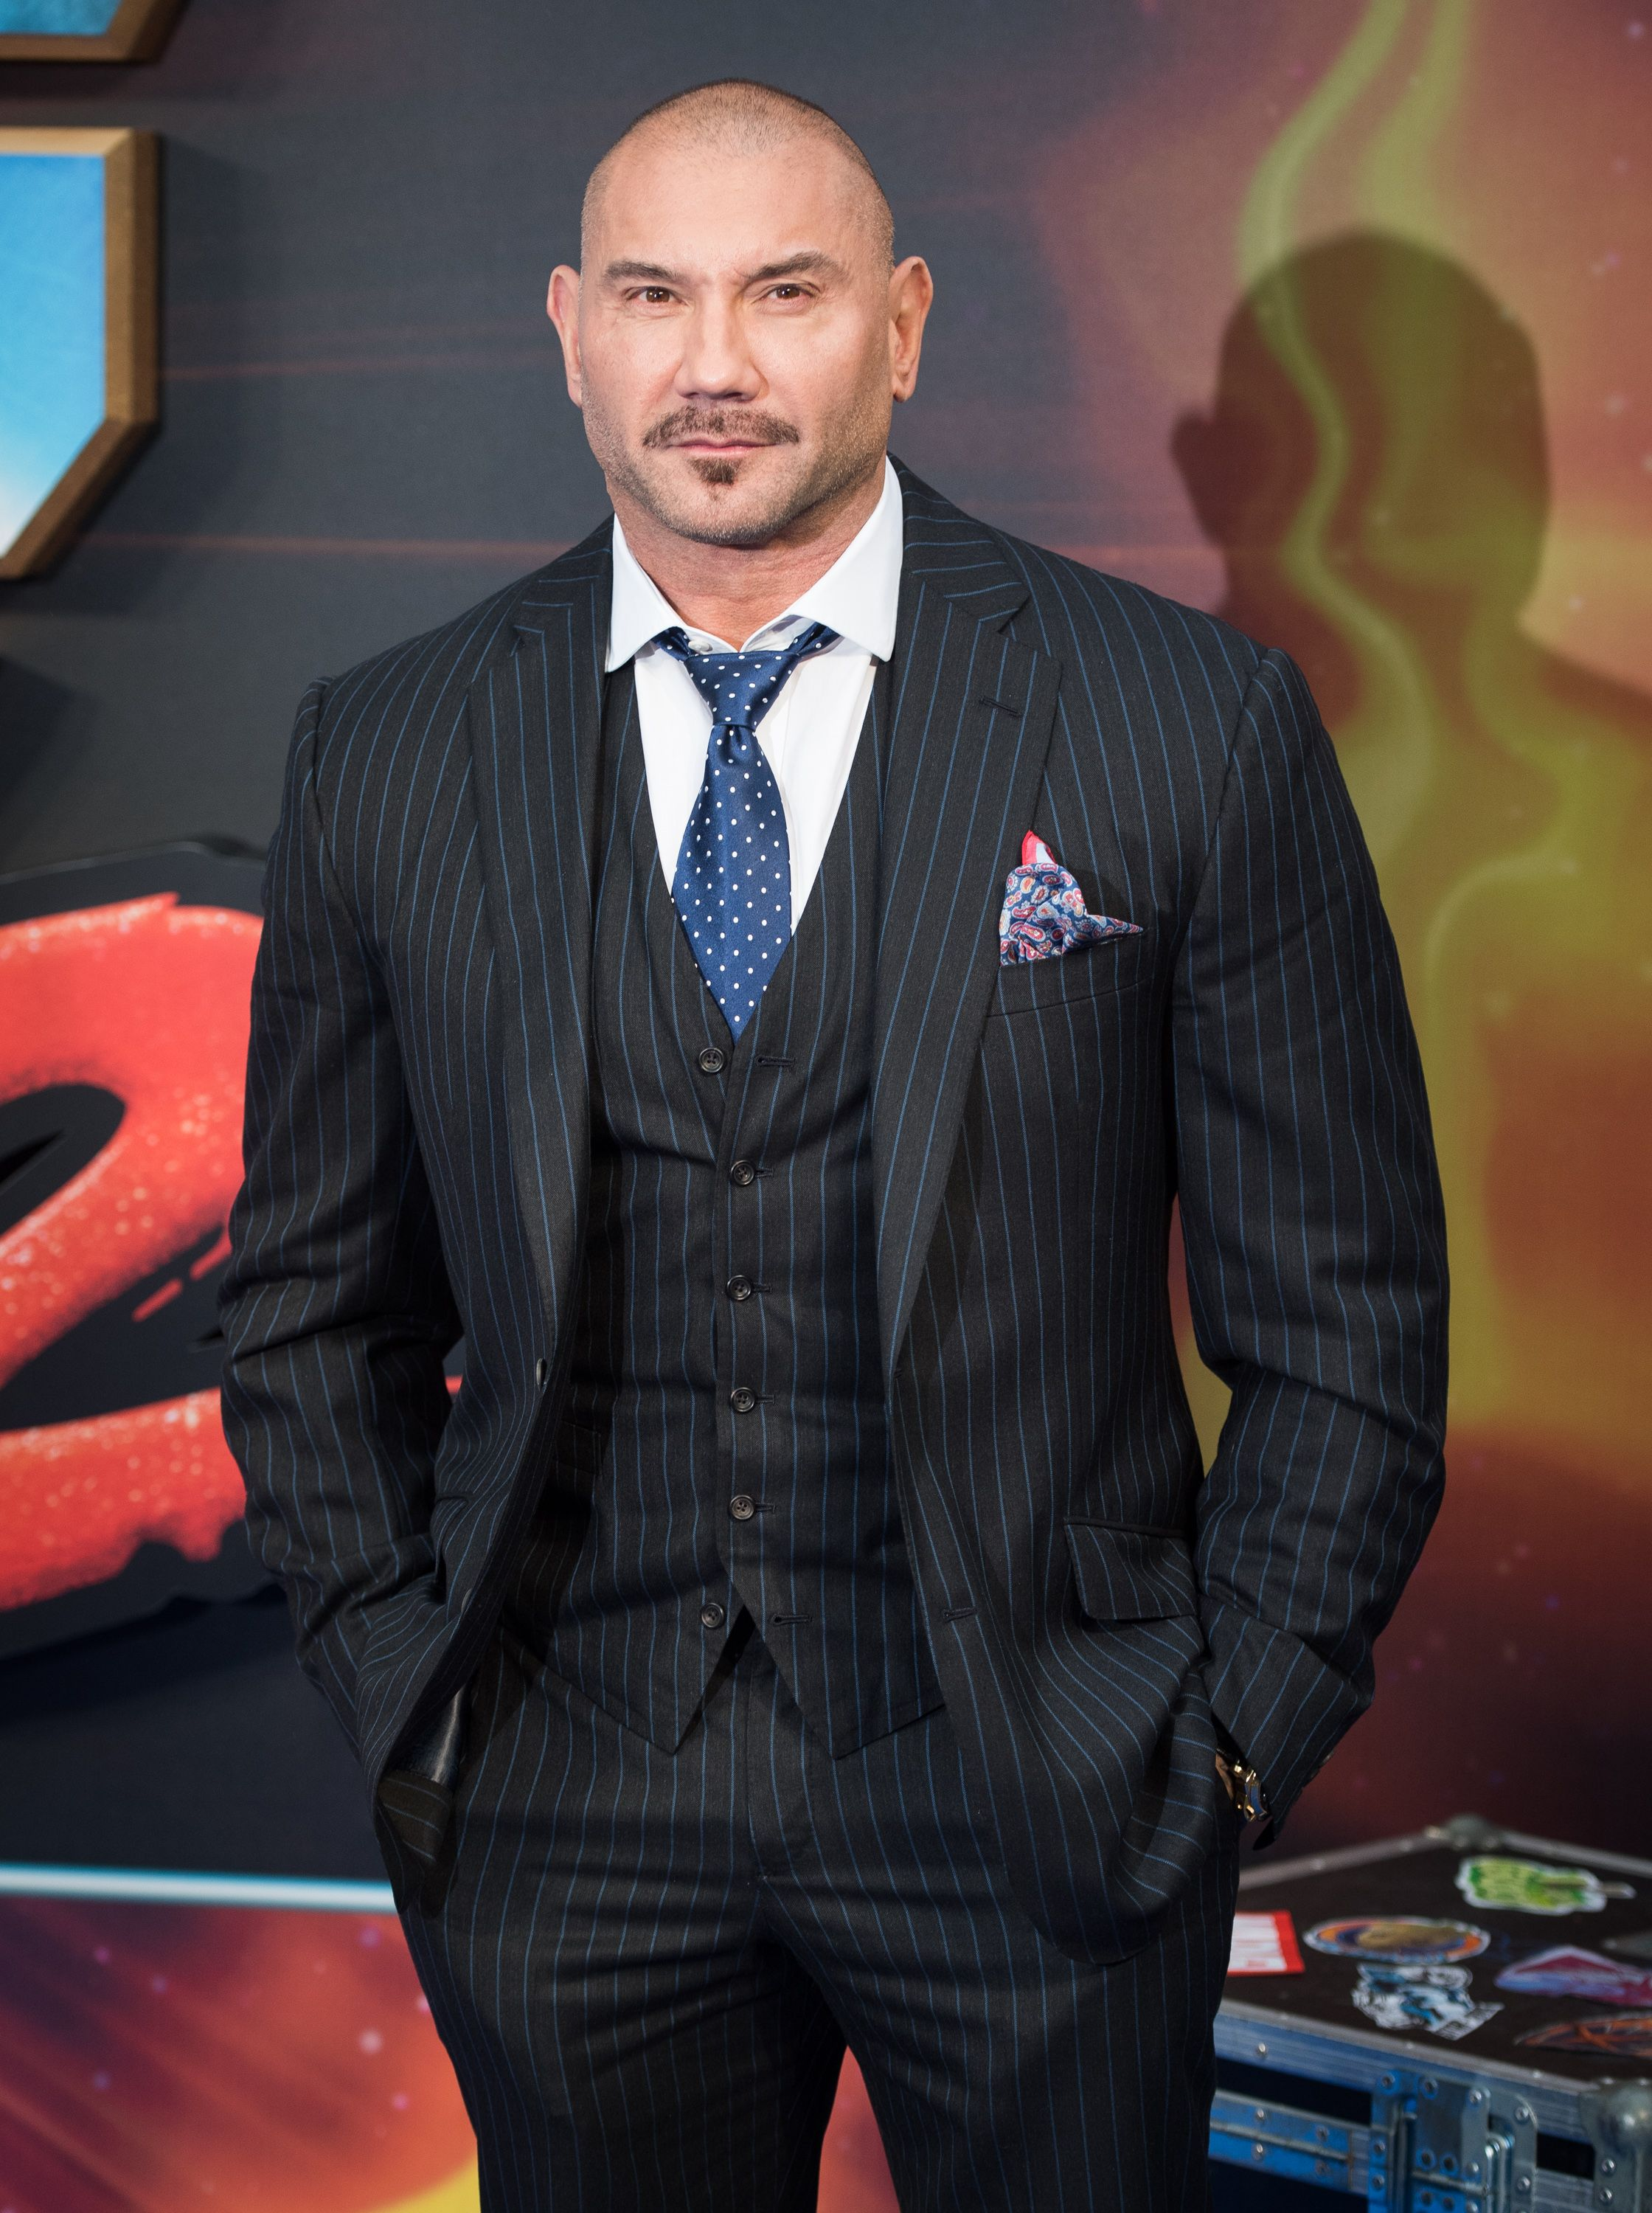 Dave Bautista Is a Little on the Thicc Side After 'Training Like Chris Pratt'